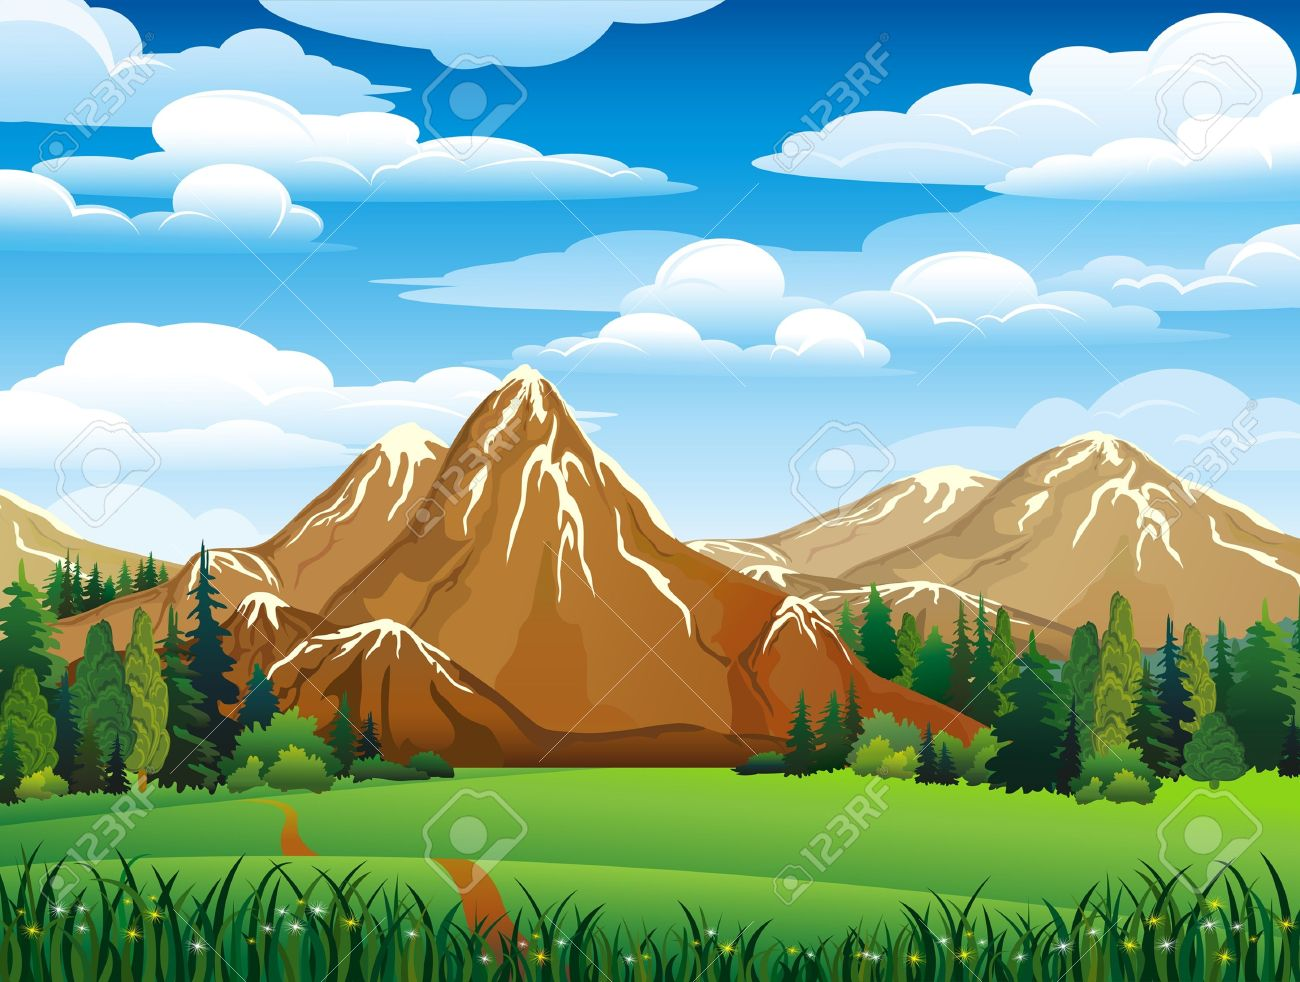 Mountain Meadow Clip Art.